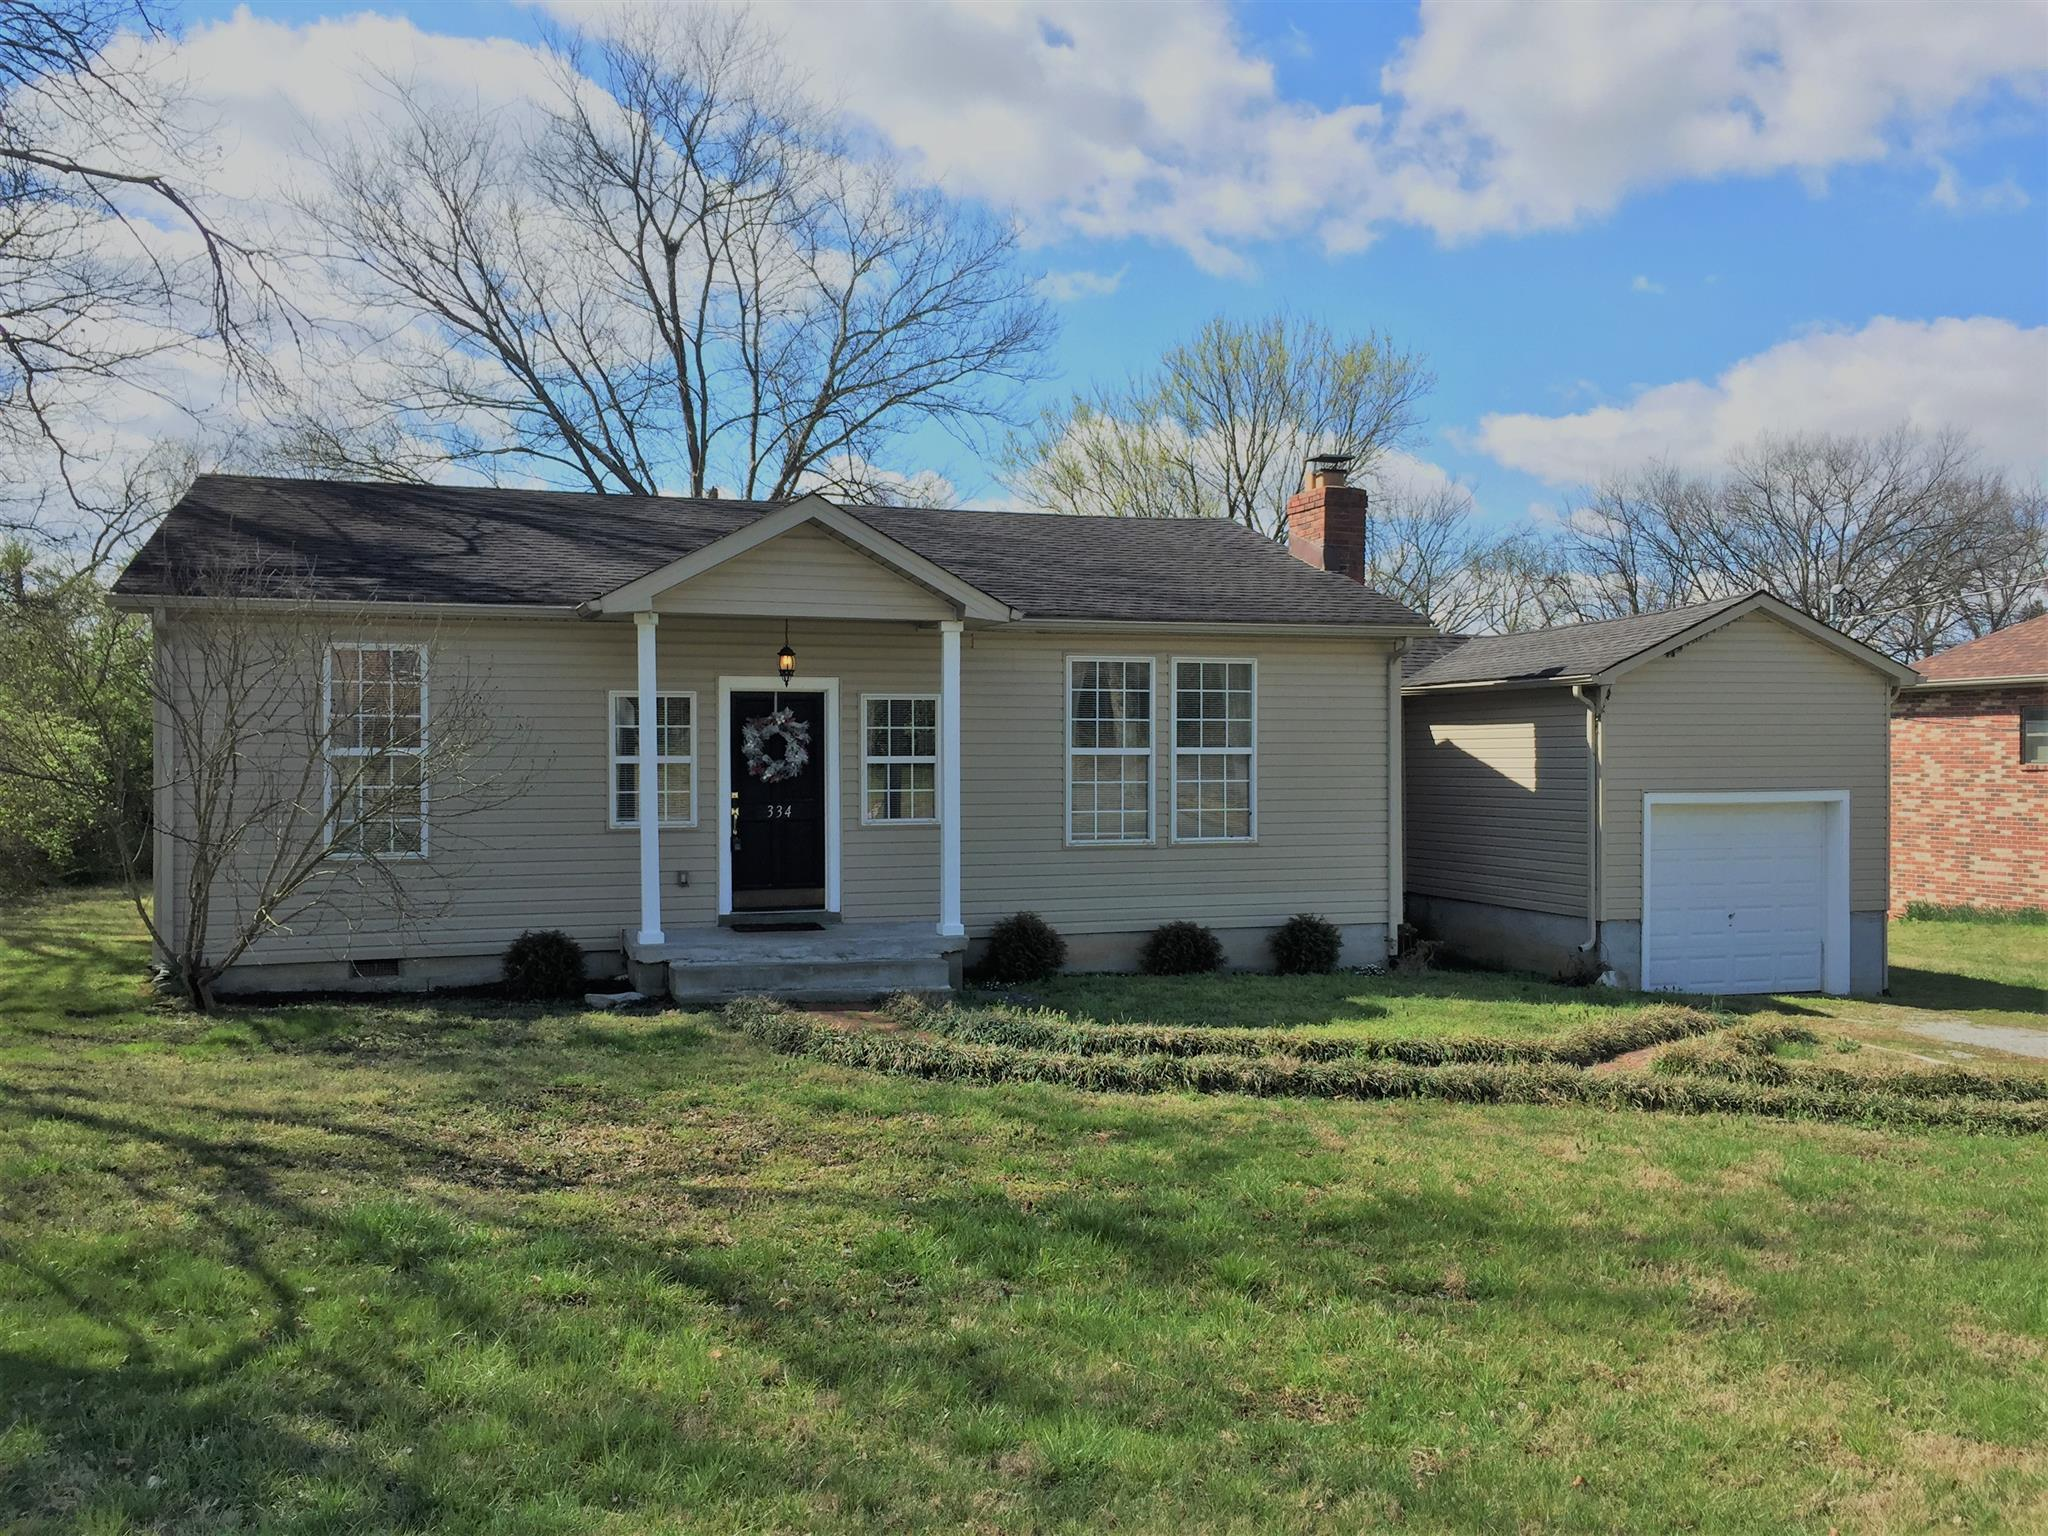 Photo of 334 Pitts Ave  Old Hickory  TN